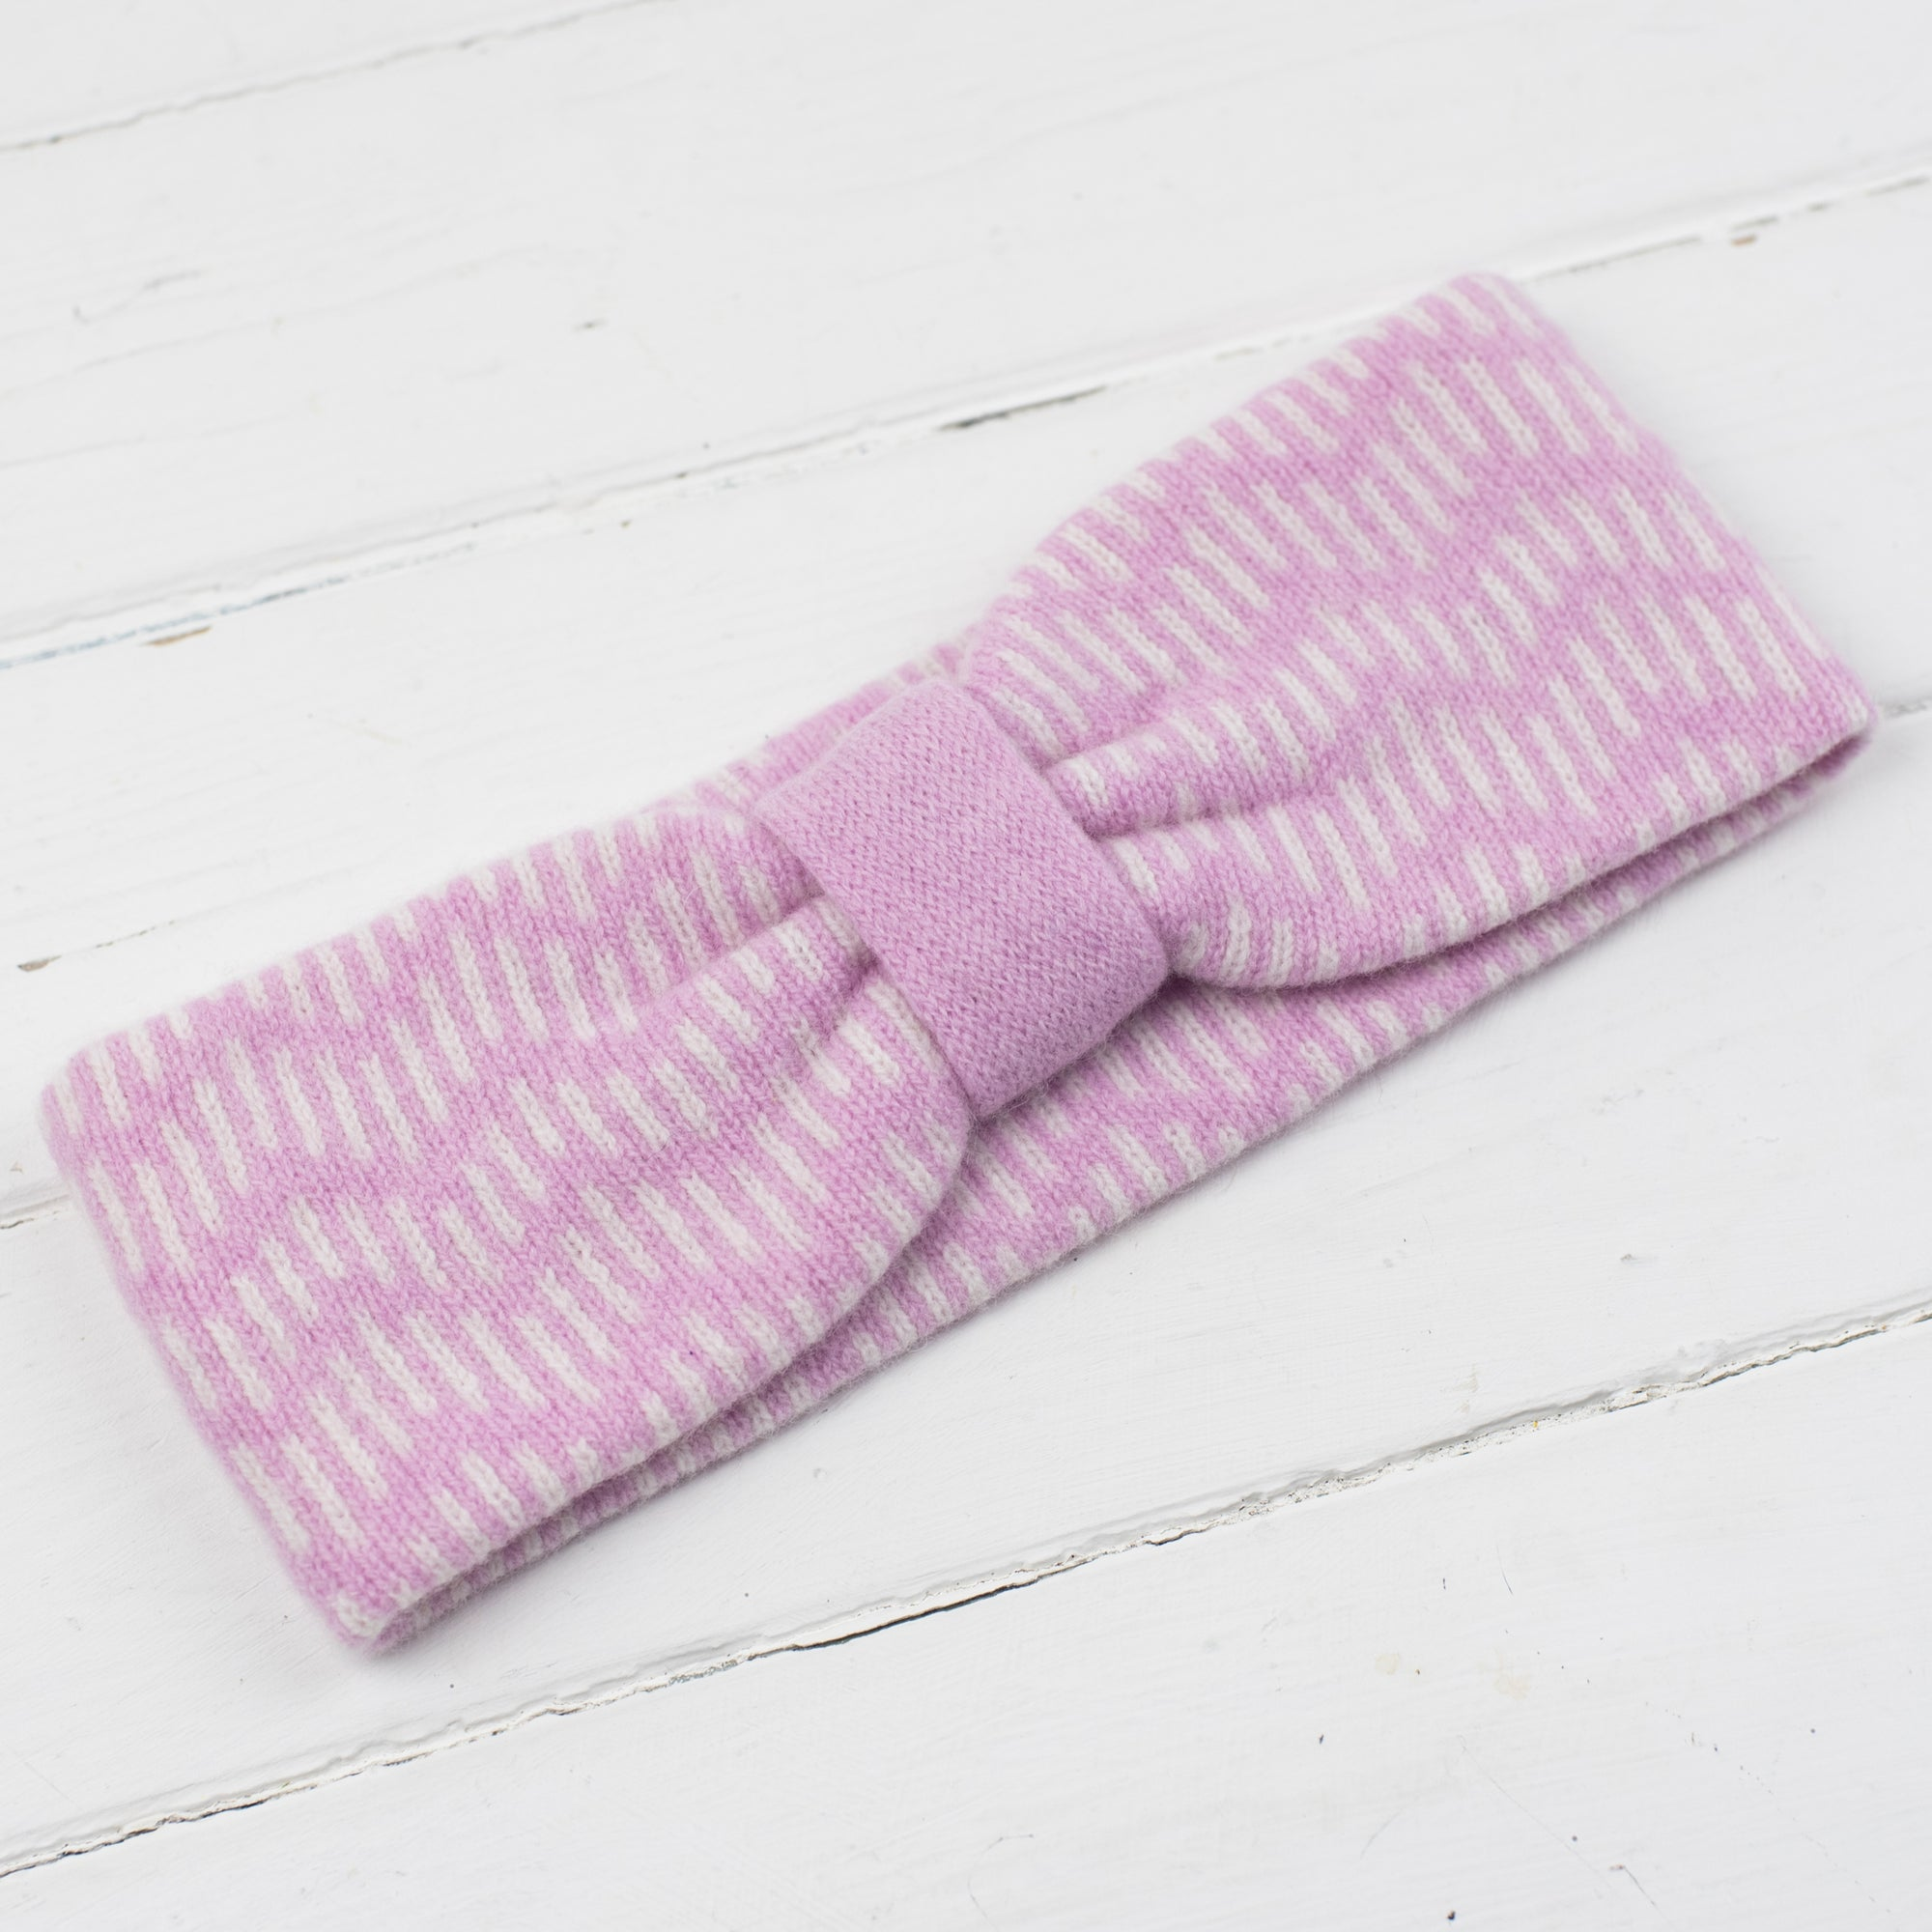 SAMPLE SALE Zig zag headband - pink and white